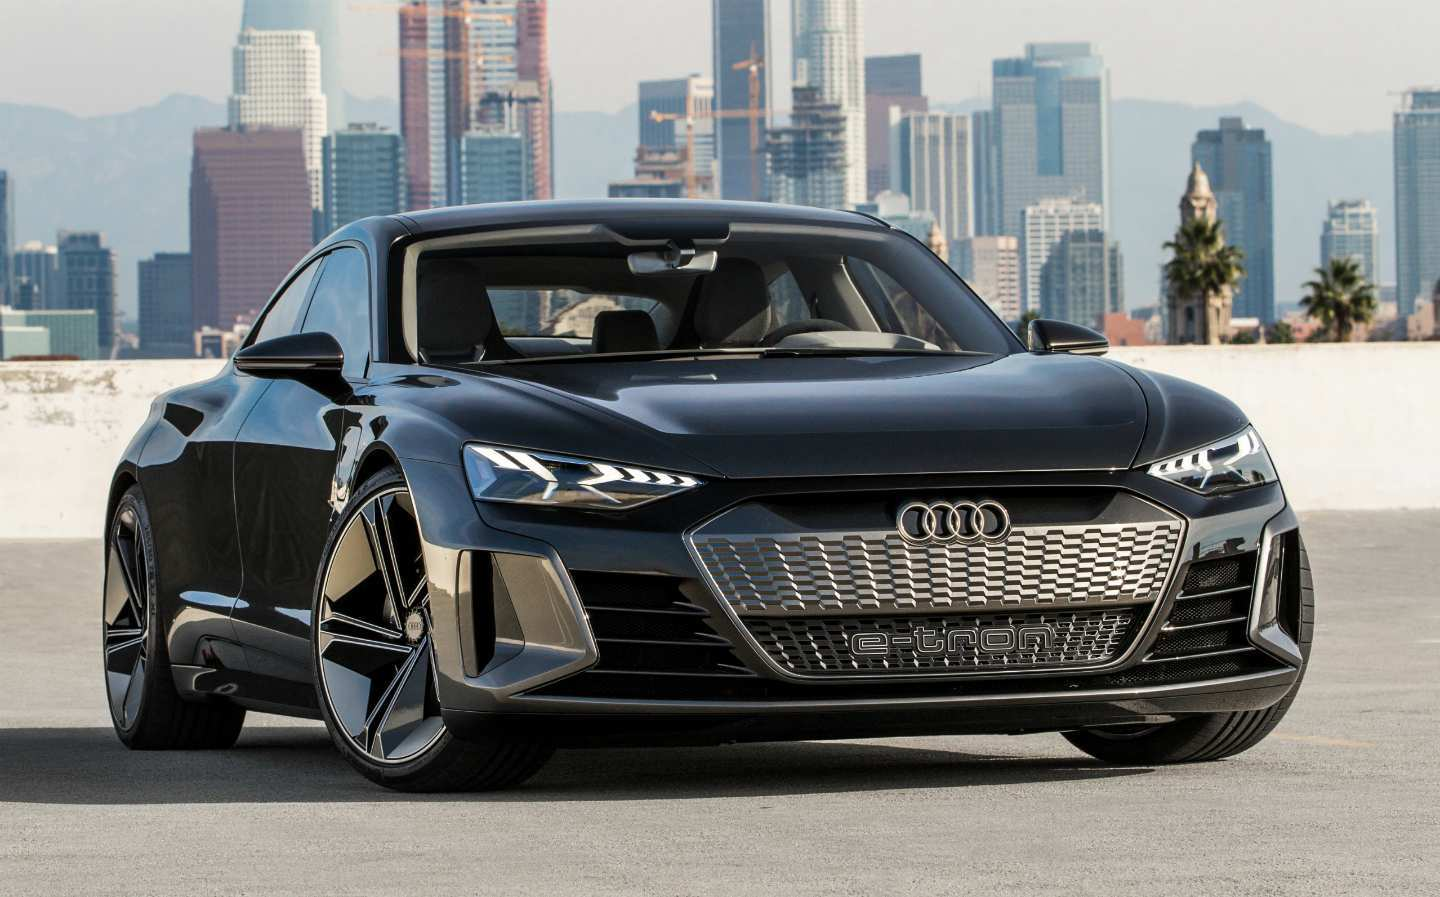 40 New Audi Gt Coupe 2020 Exterior